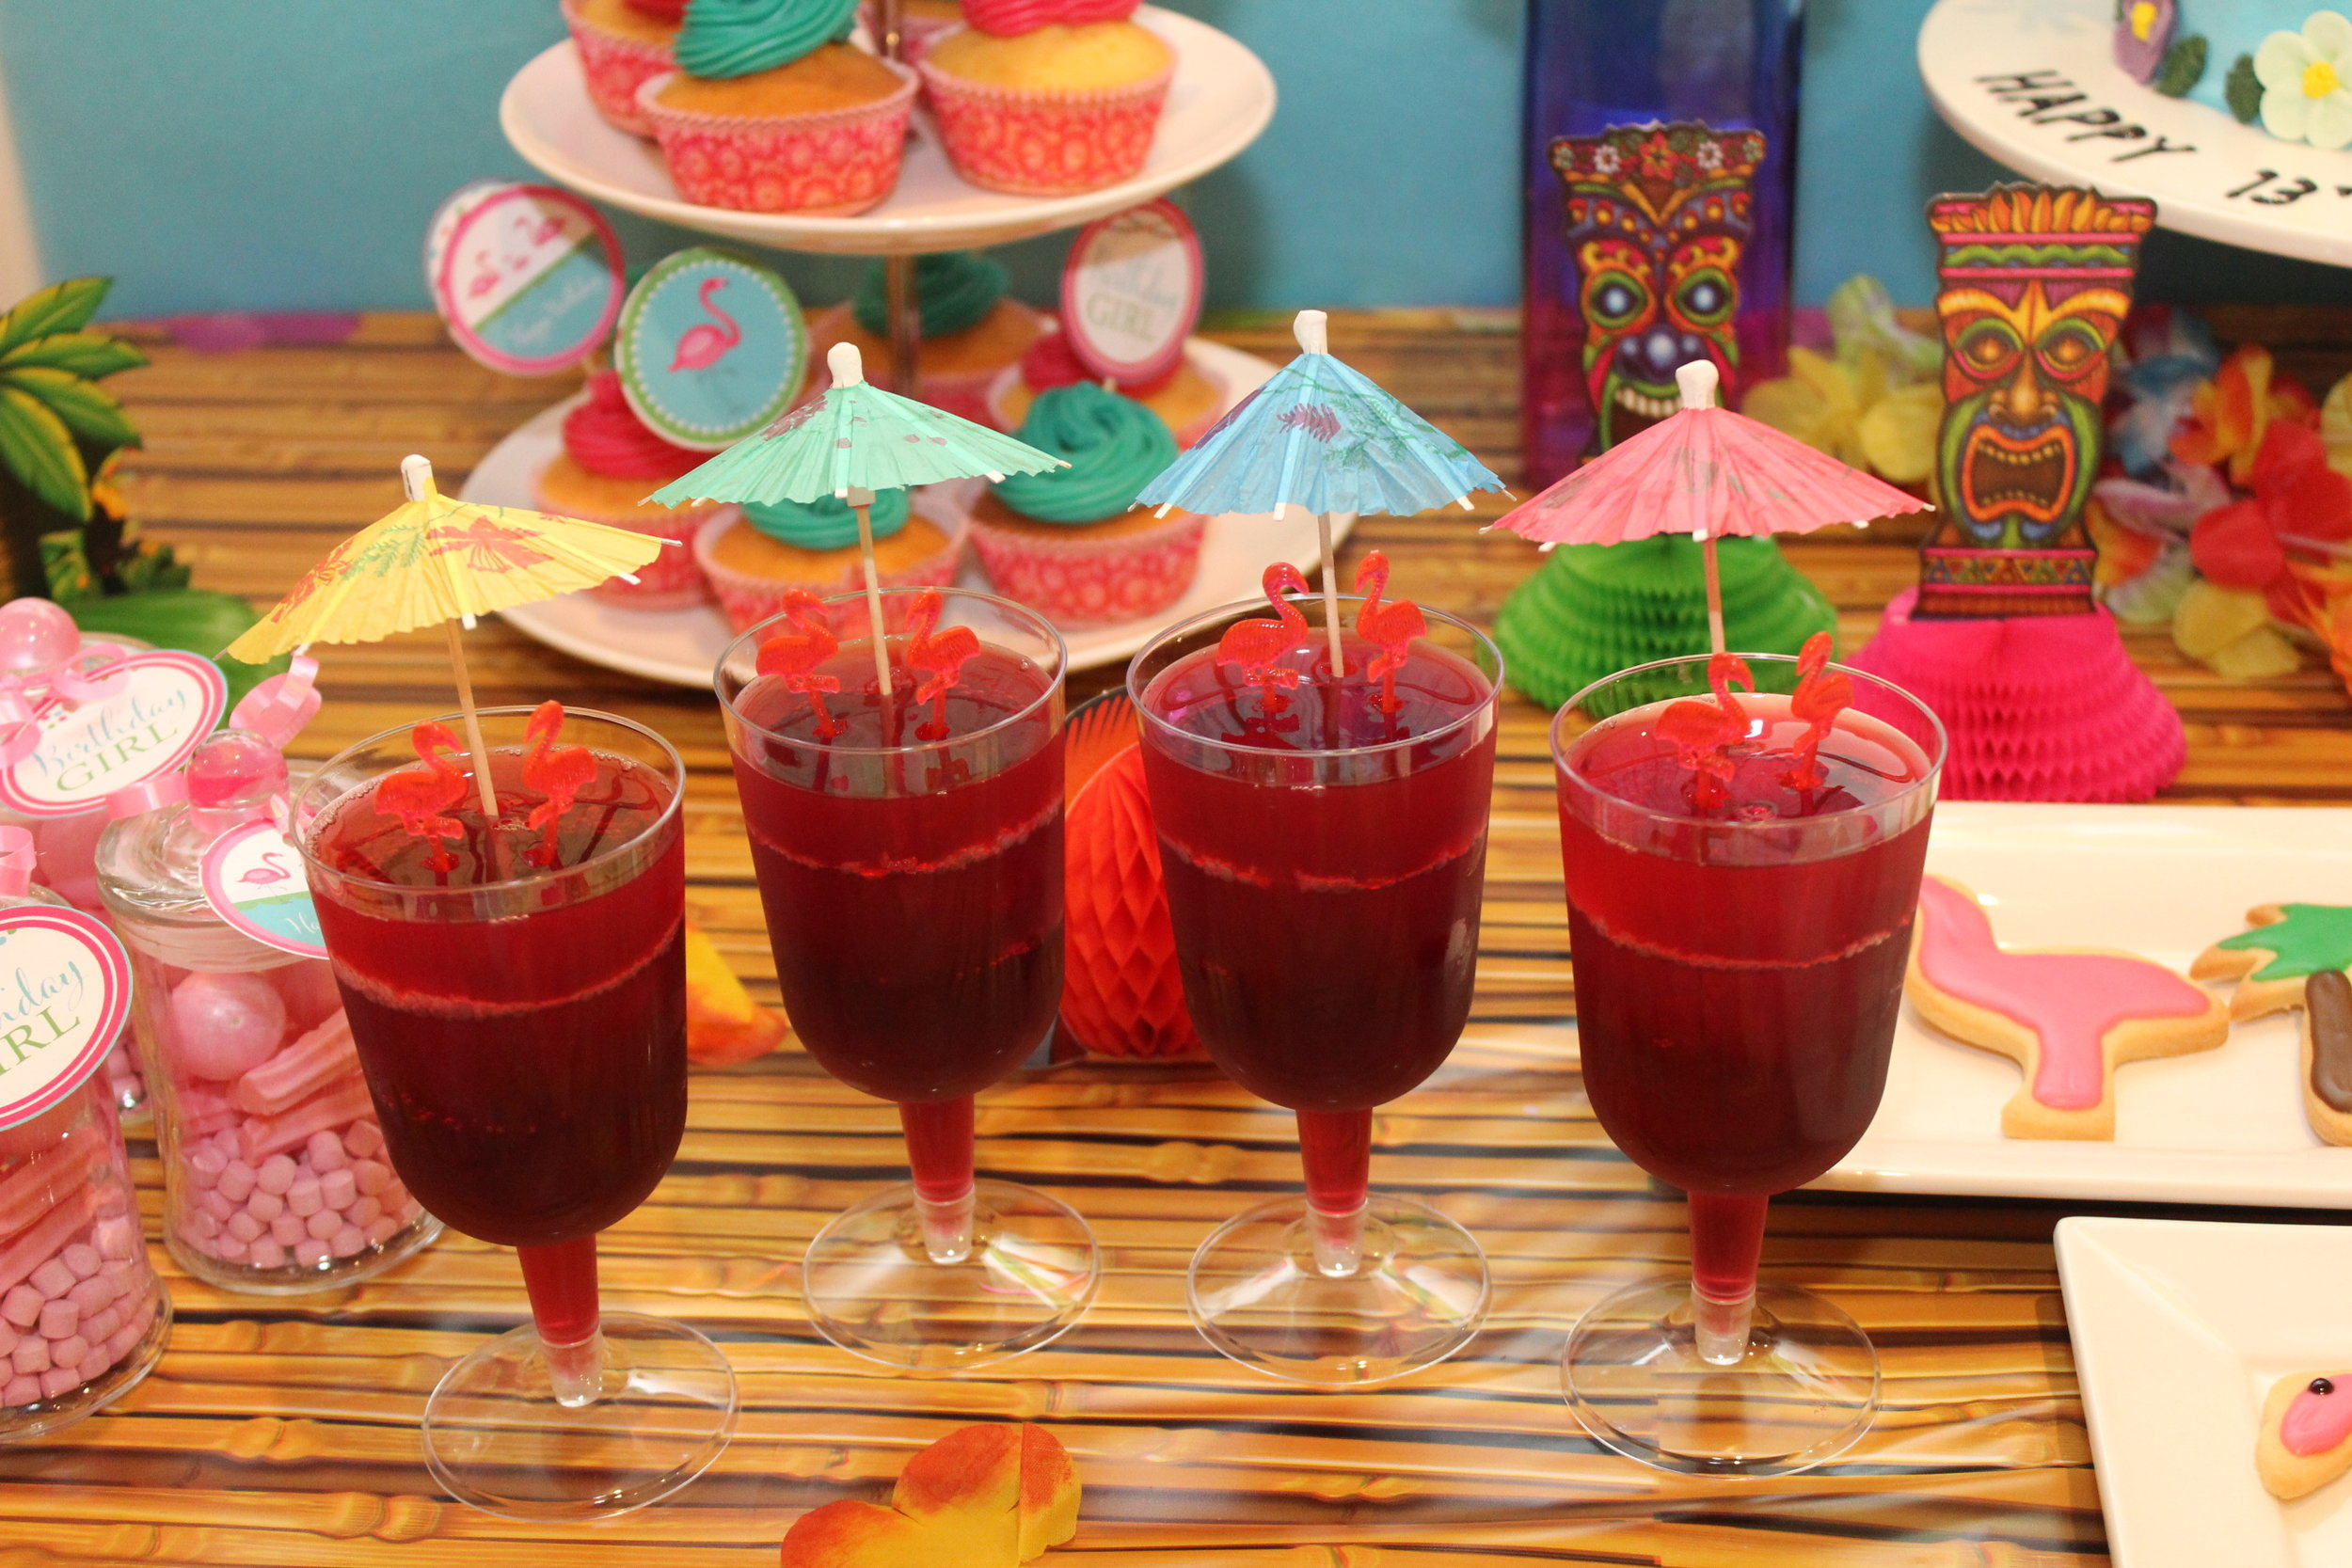 Flamingo Jelly cups